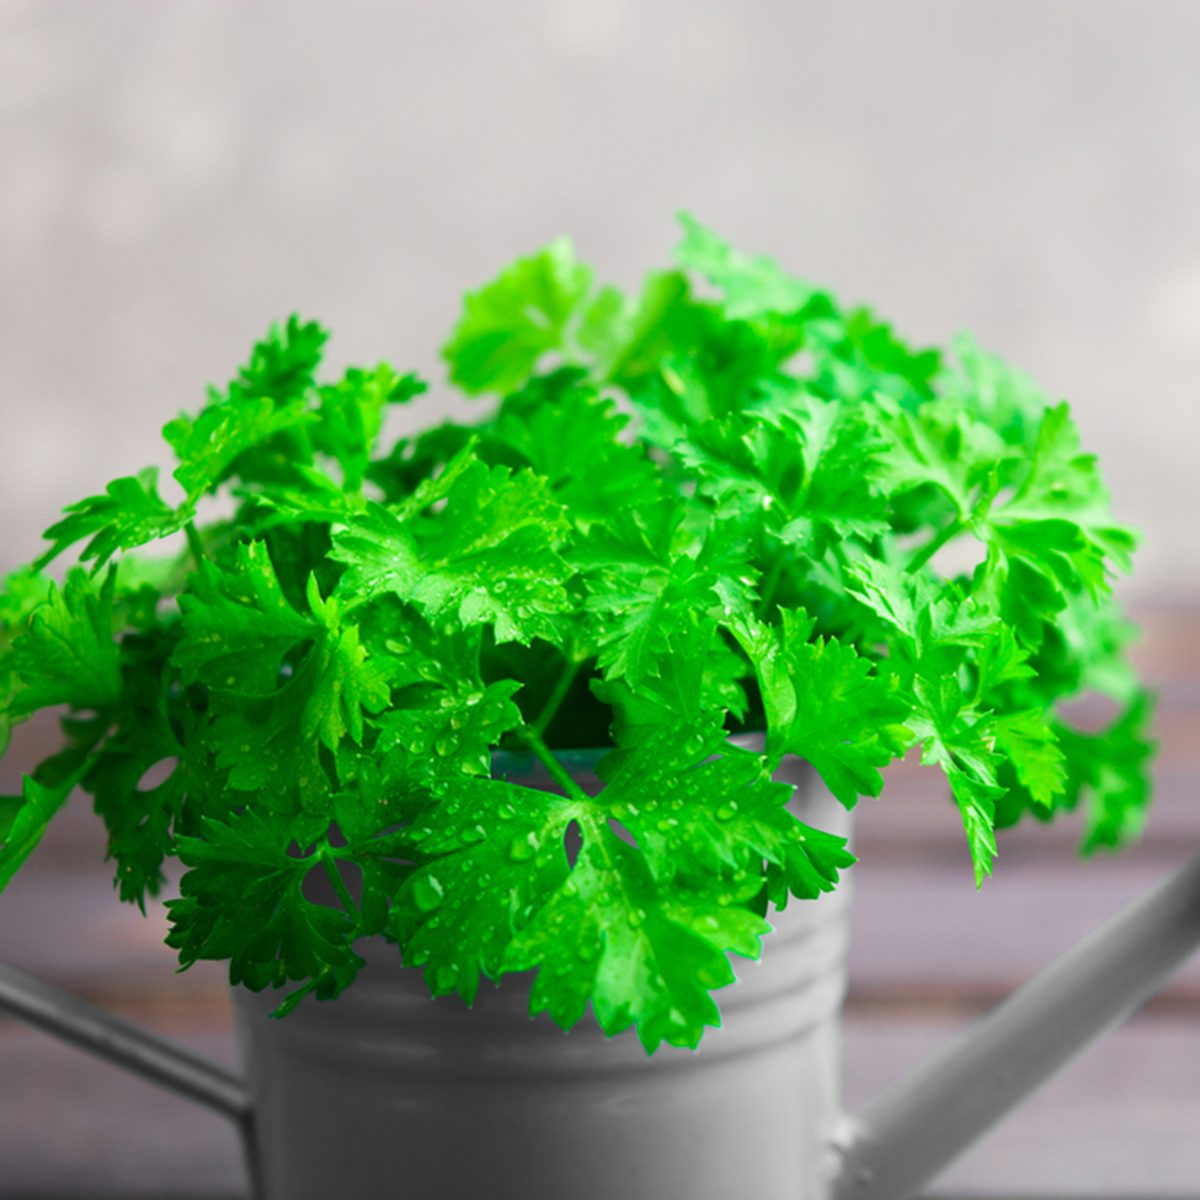 Closeup view of fresh green parsley in pot